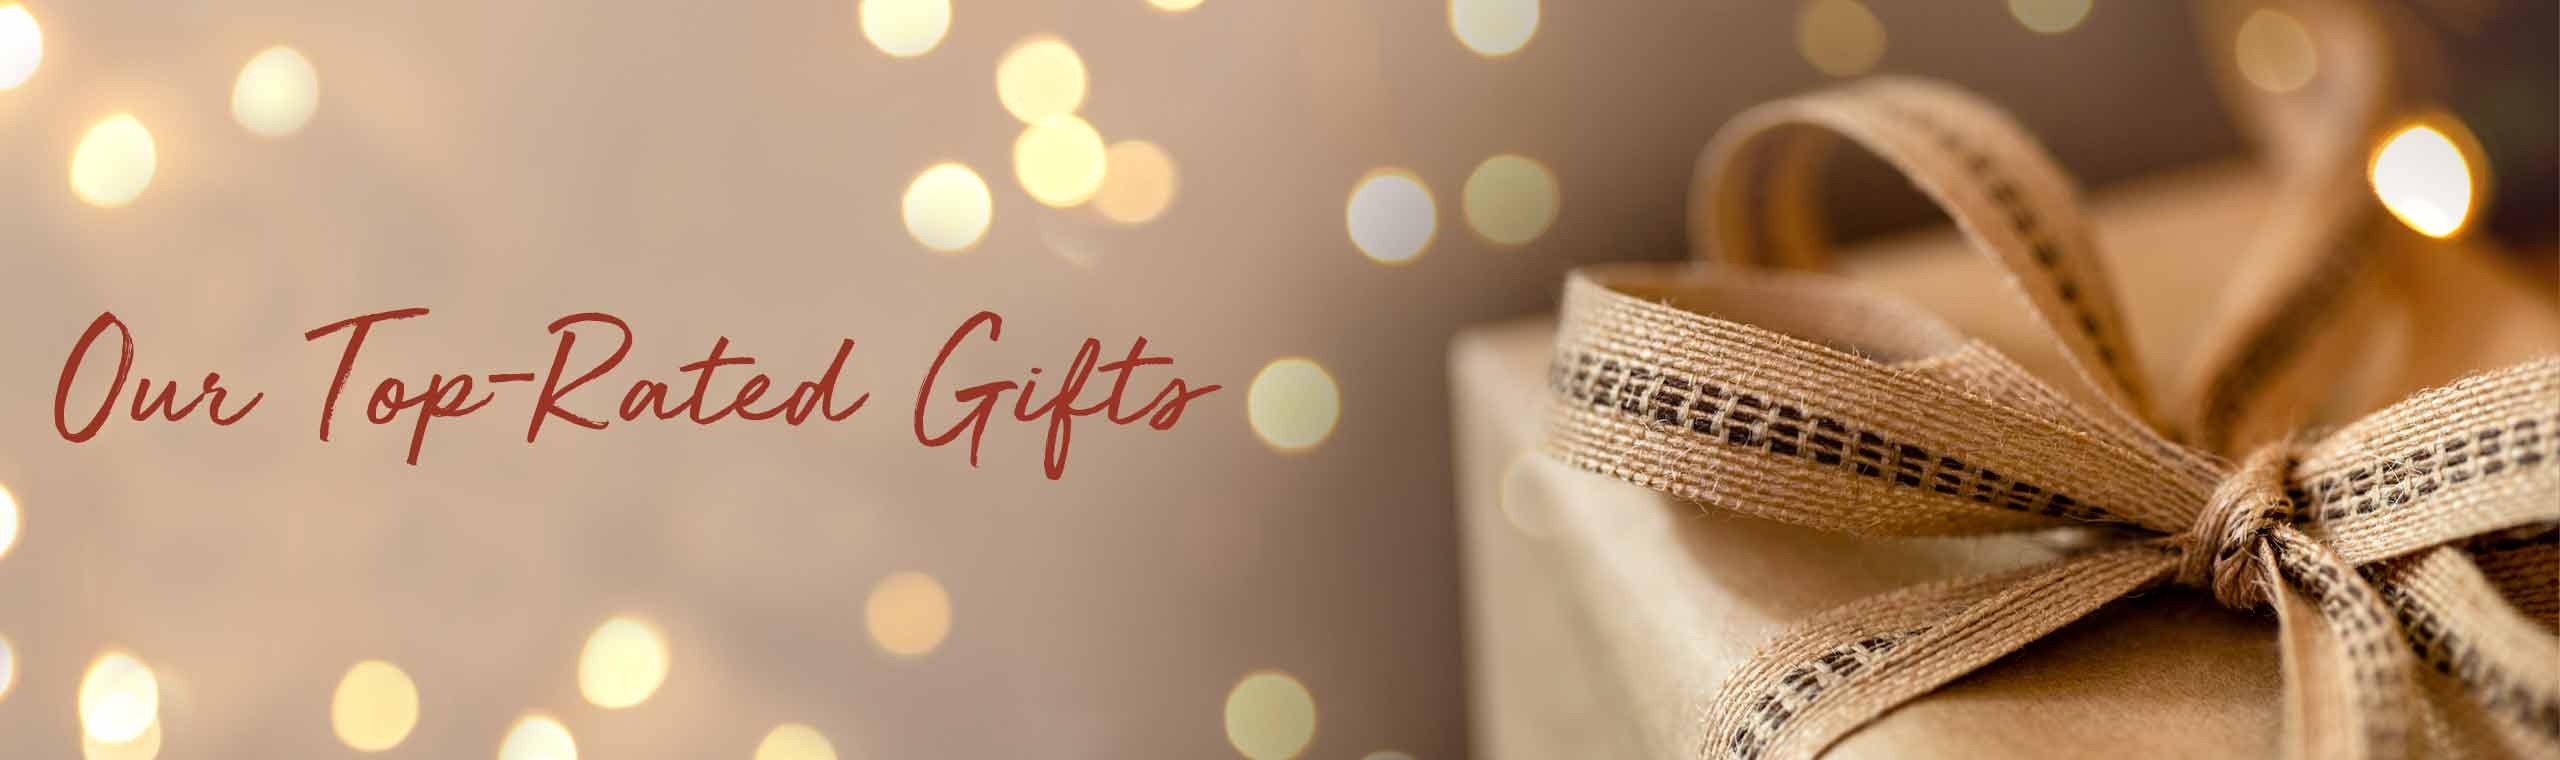 Our Top-Rated Gifts. Brown gift package on a holiday lights background.